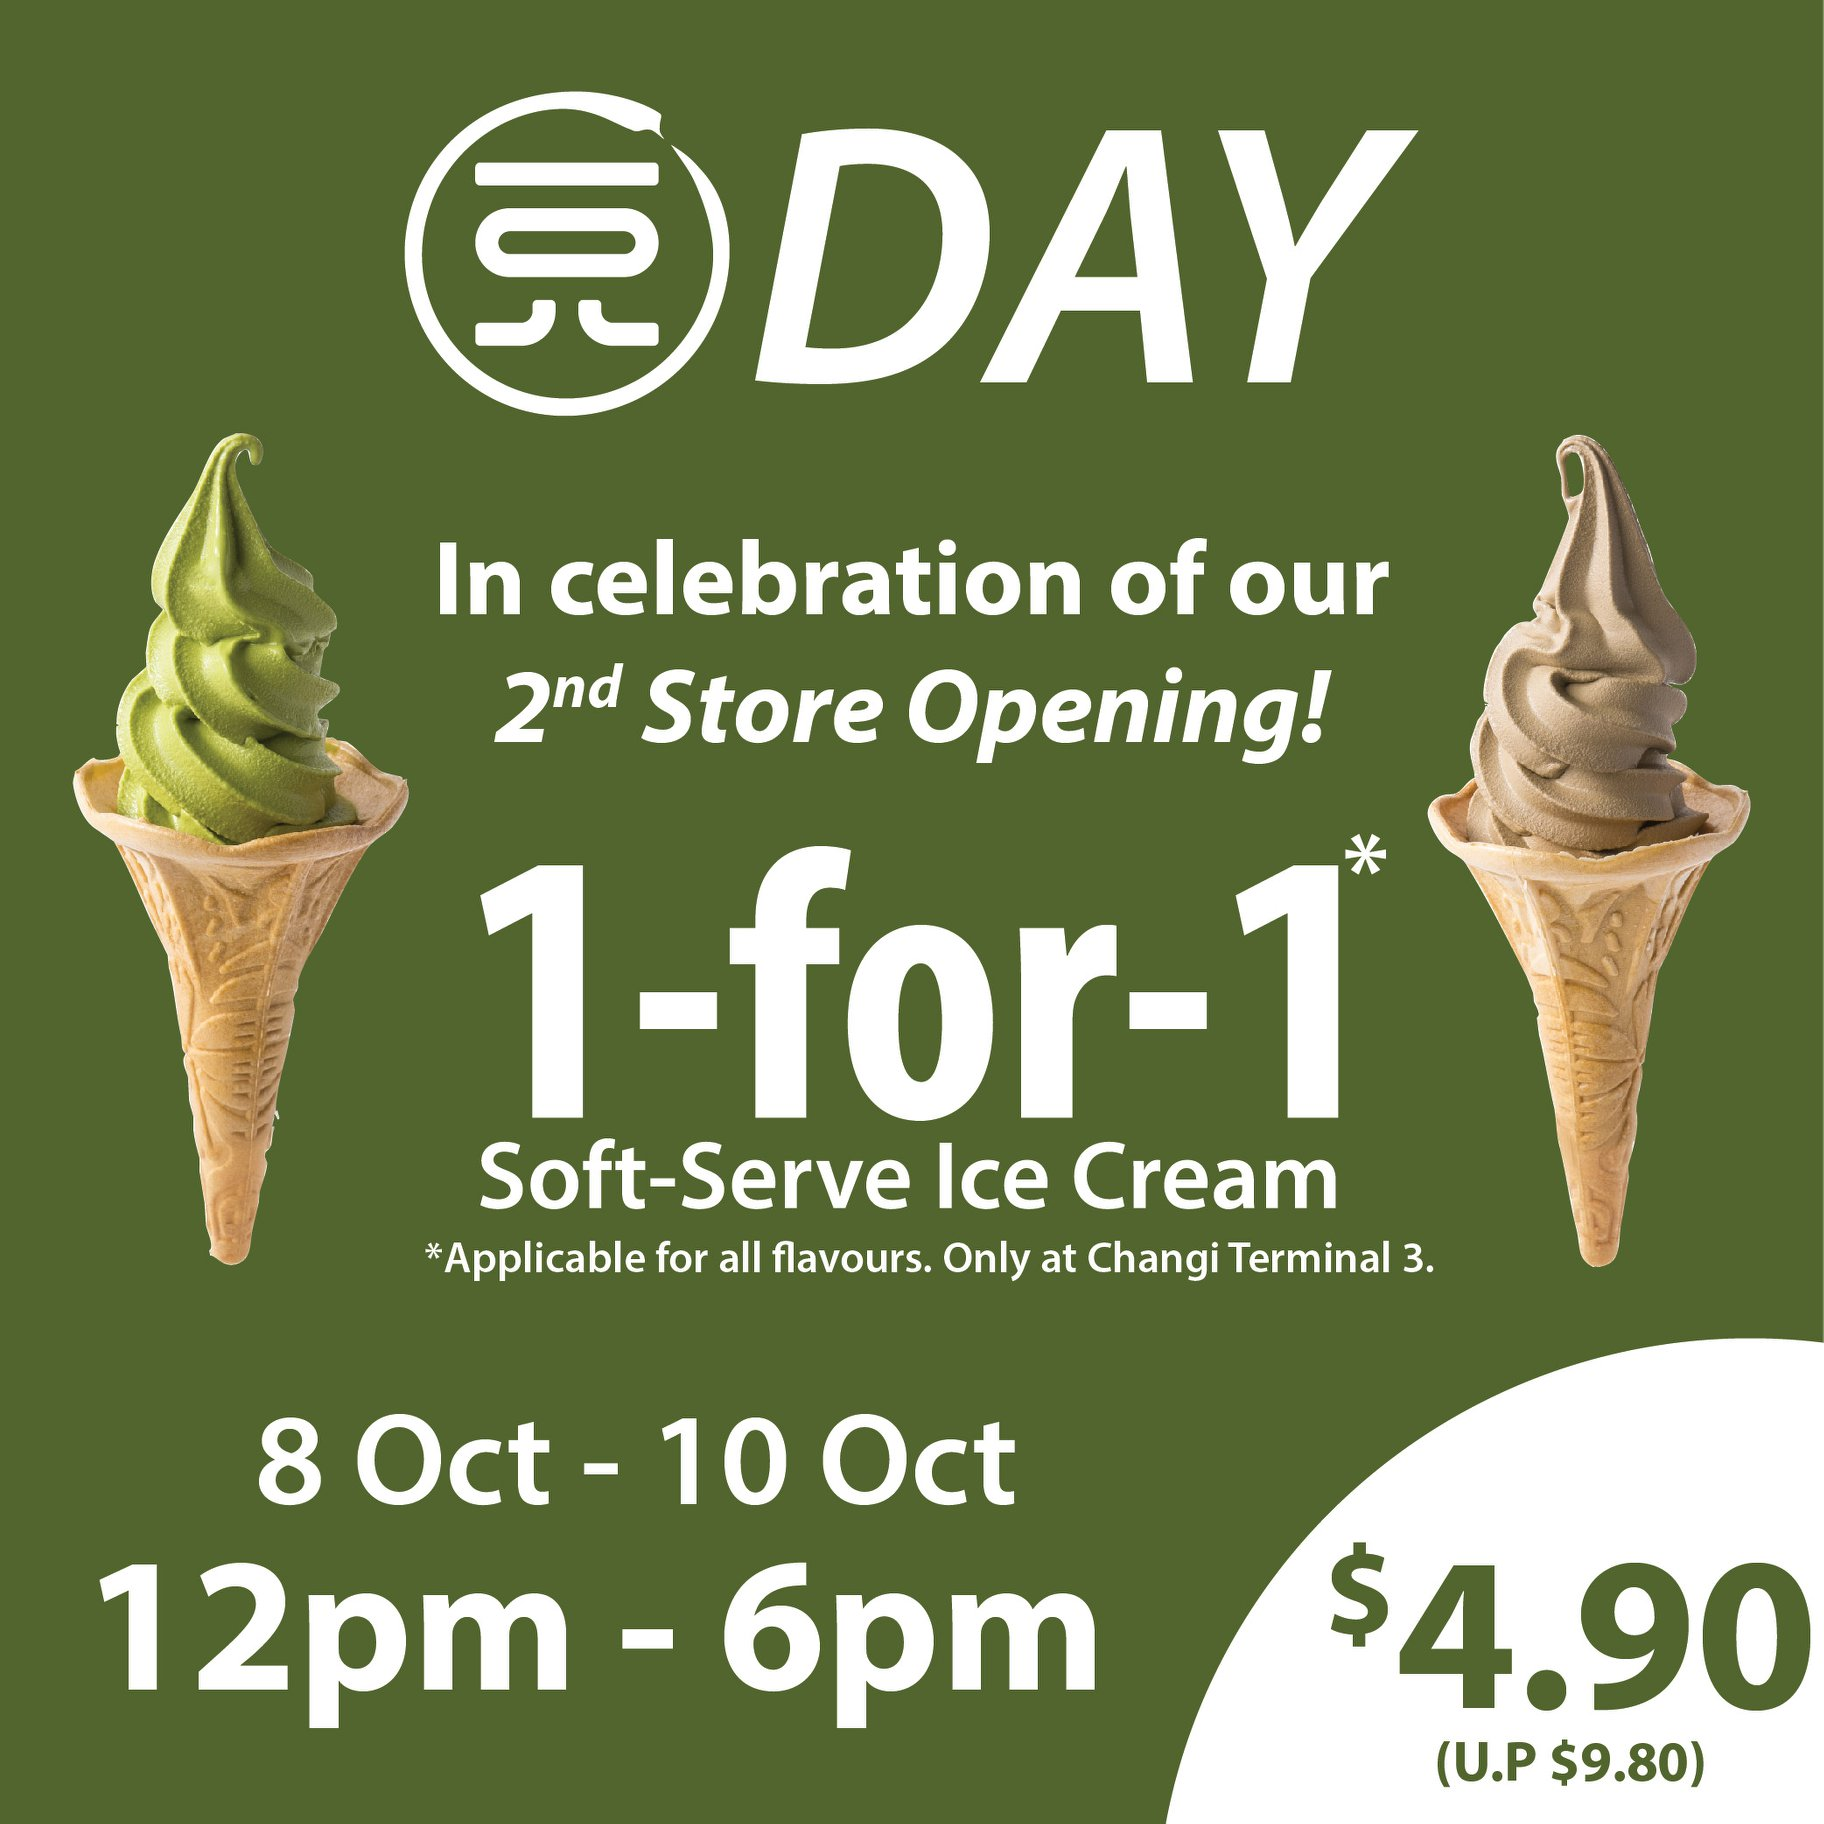 108 Matcha Saro Singapore 1-for-1 Soft Serve Ice Cream Promotion 8-10 Oct 2019 | Why Not Deals & Promotions